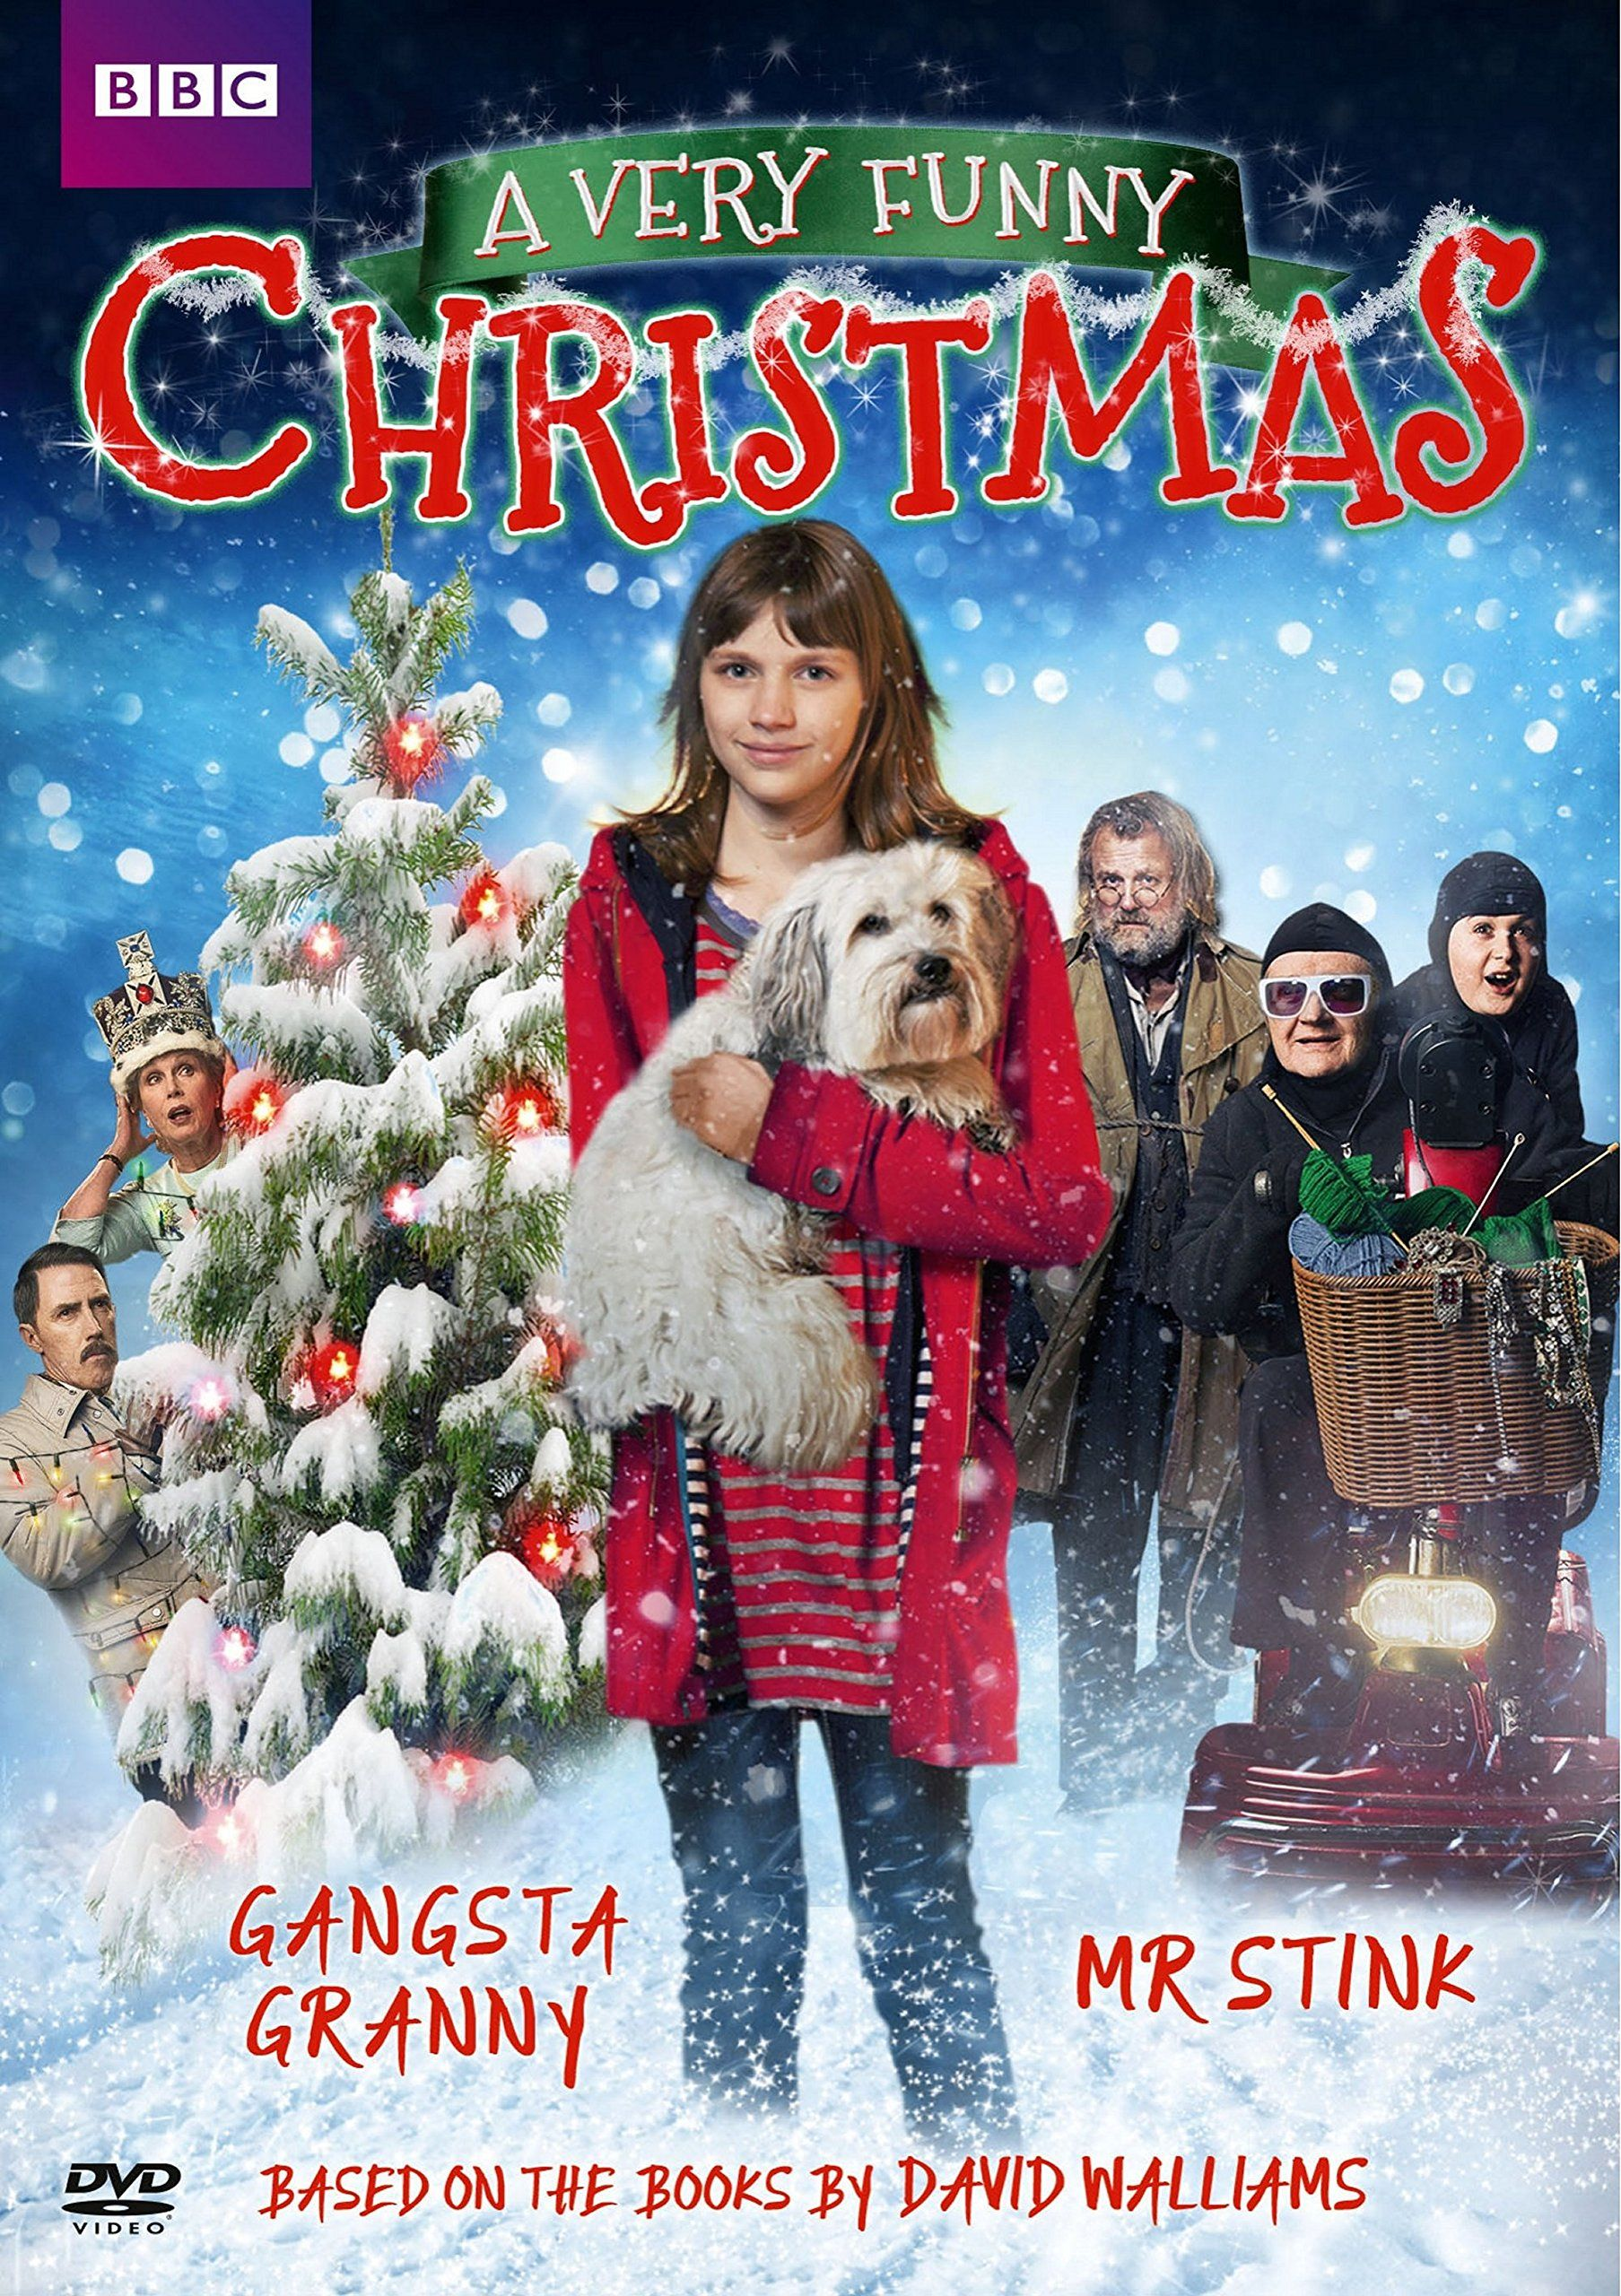 A Very Funny Christmas | November 18th, 2014 DVD/Blu-ray Releases ...